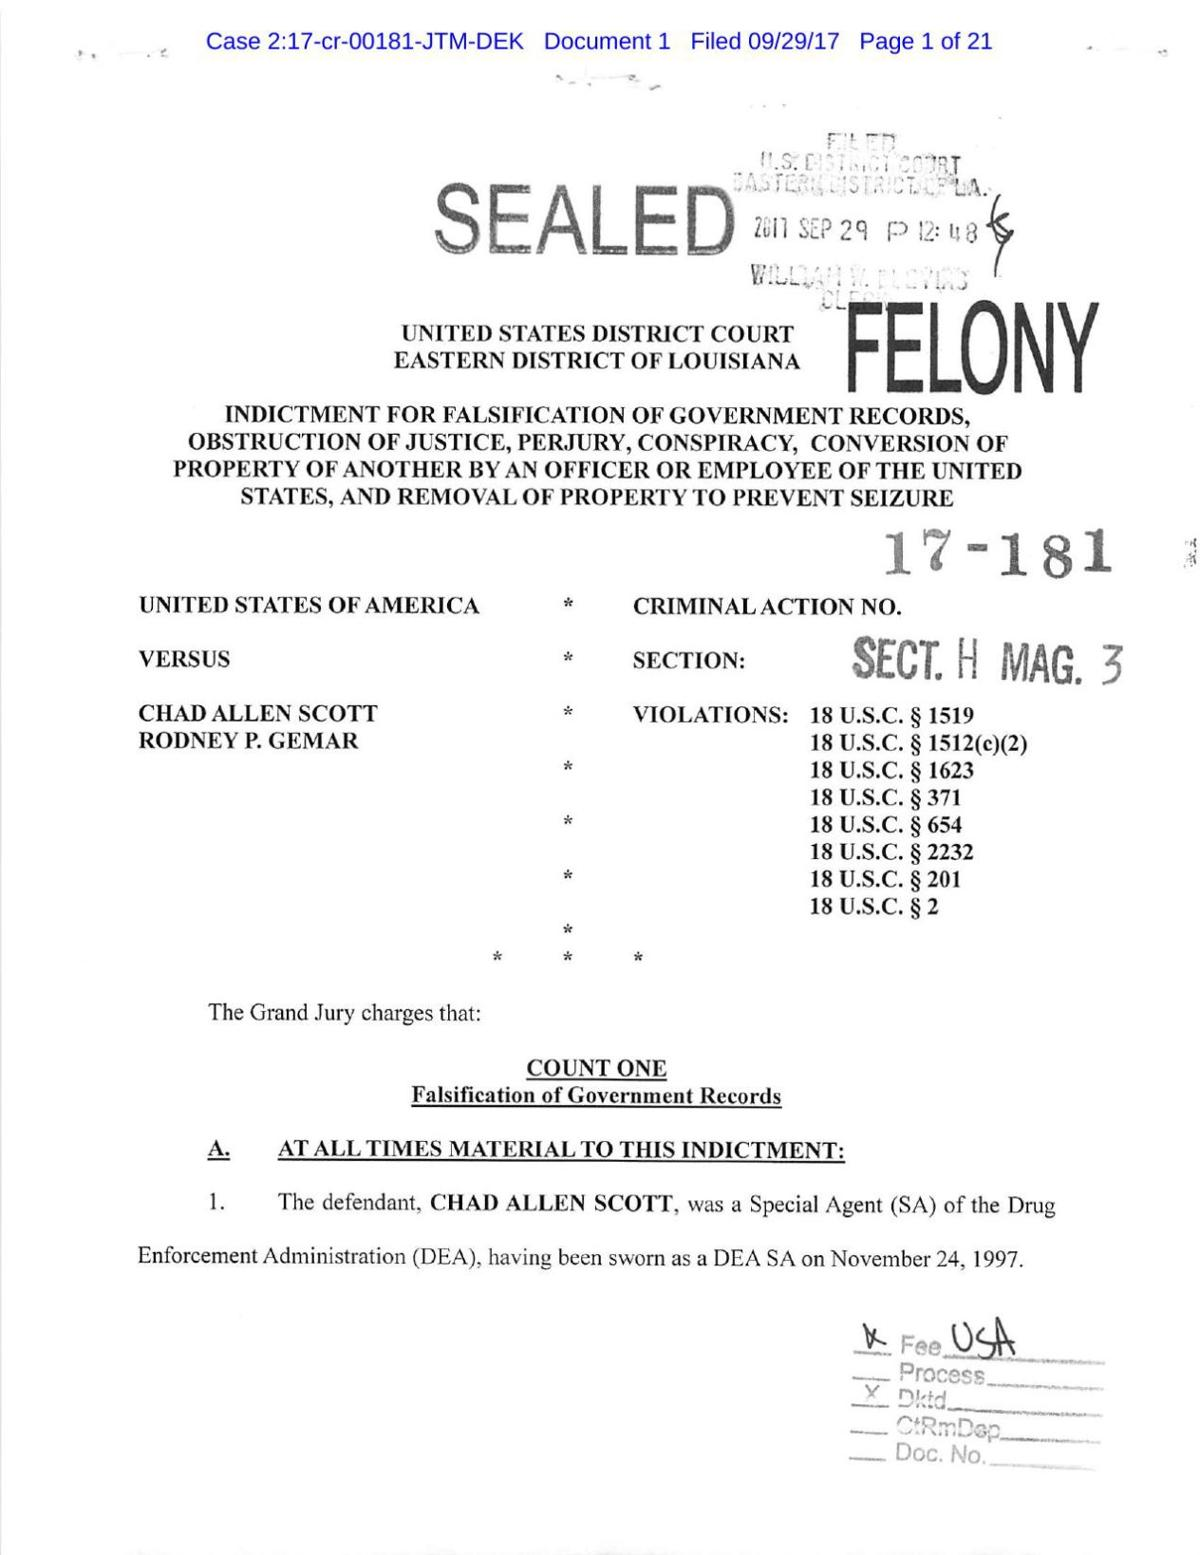 Chad Scott indictment